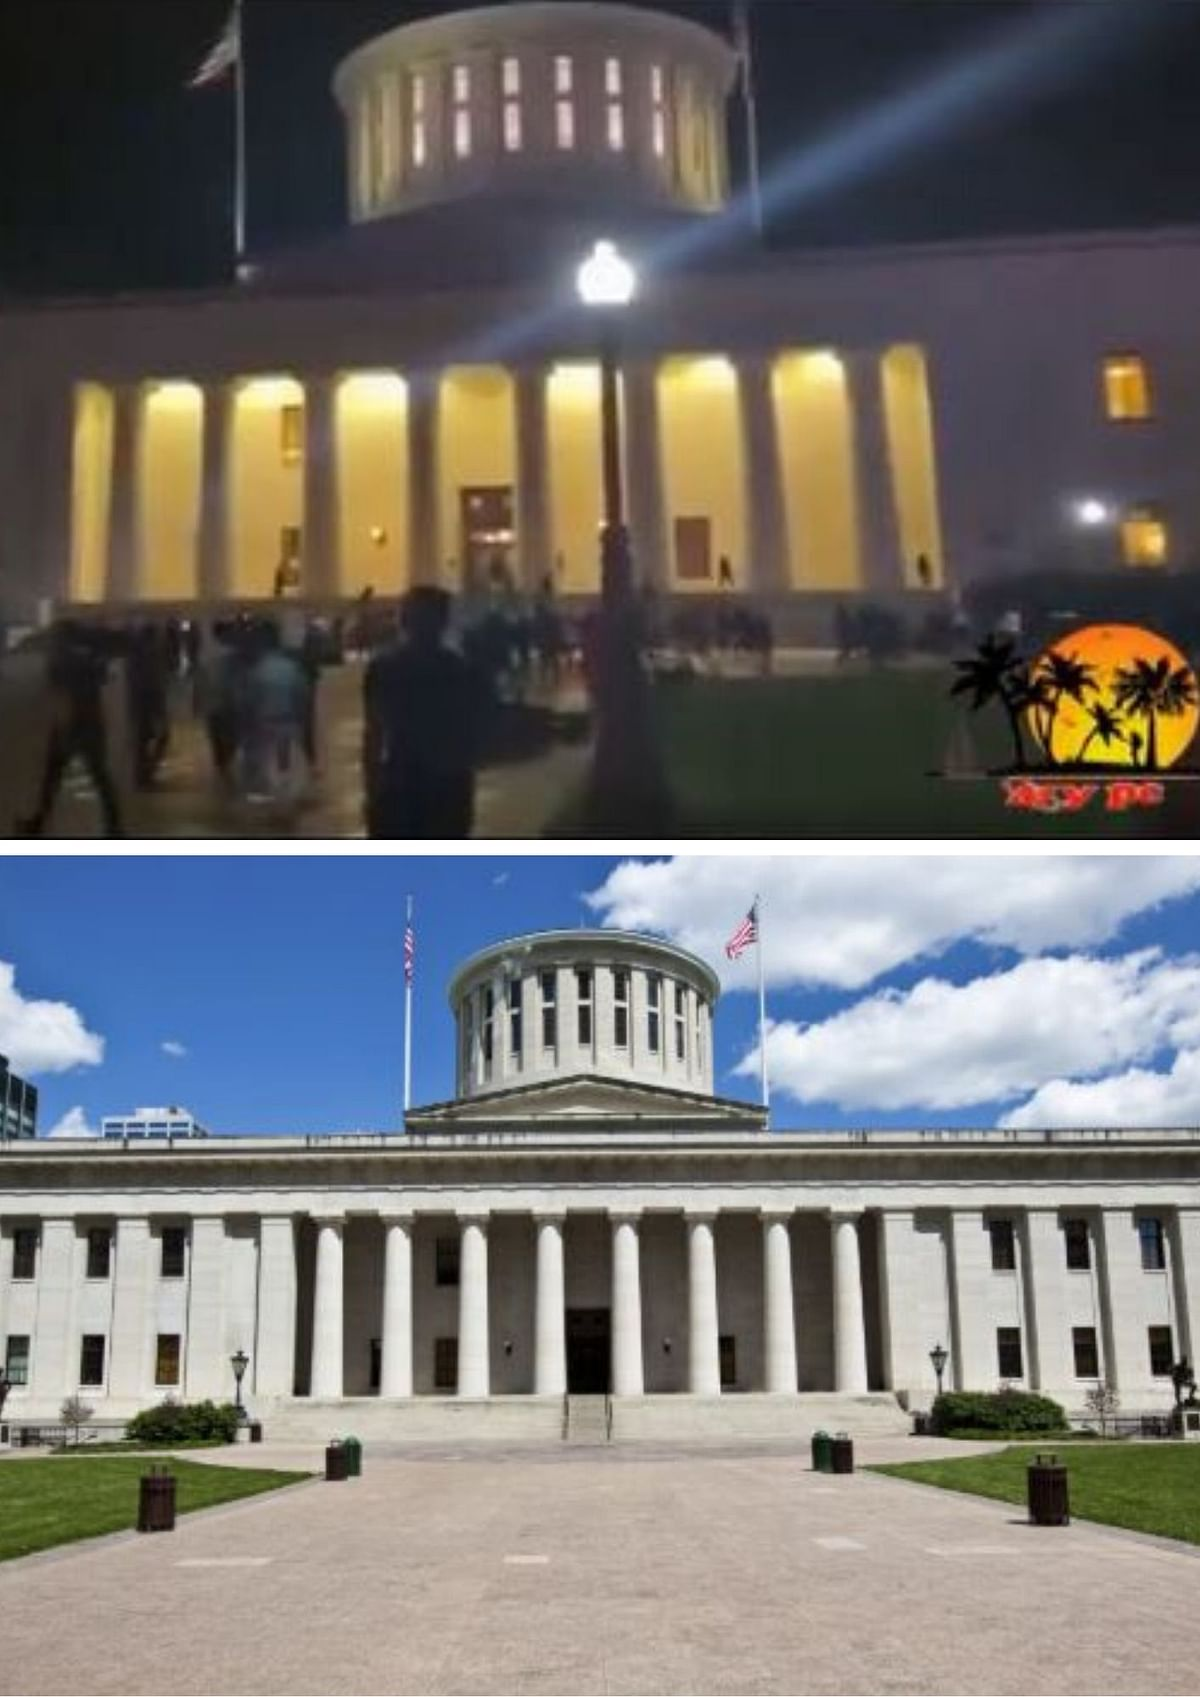 Building in the viral video (Above), Ohio Statehouse (Below)/